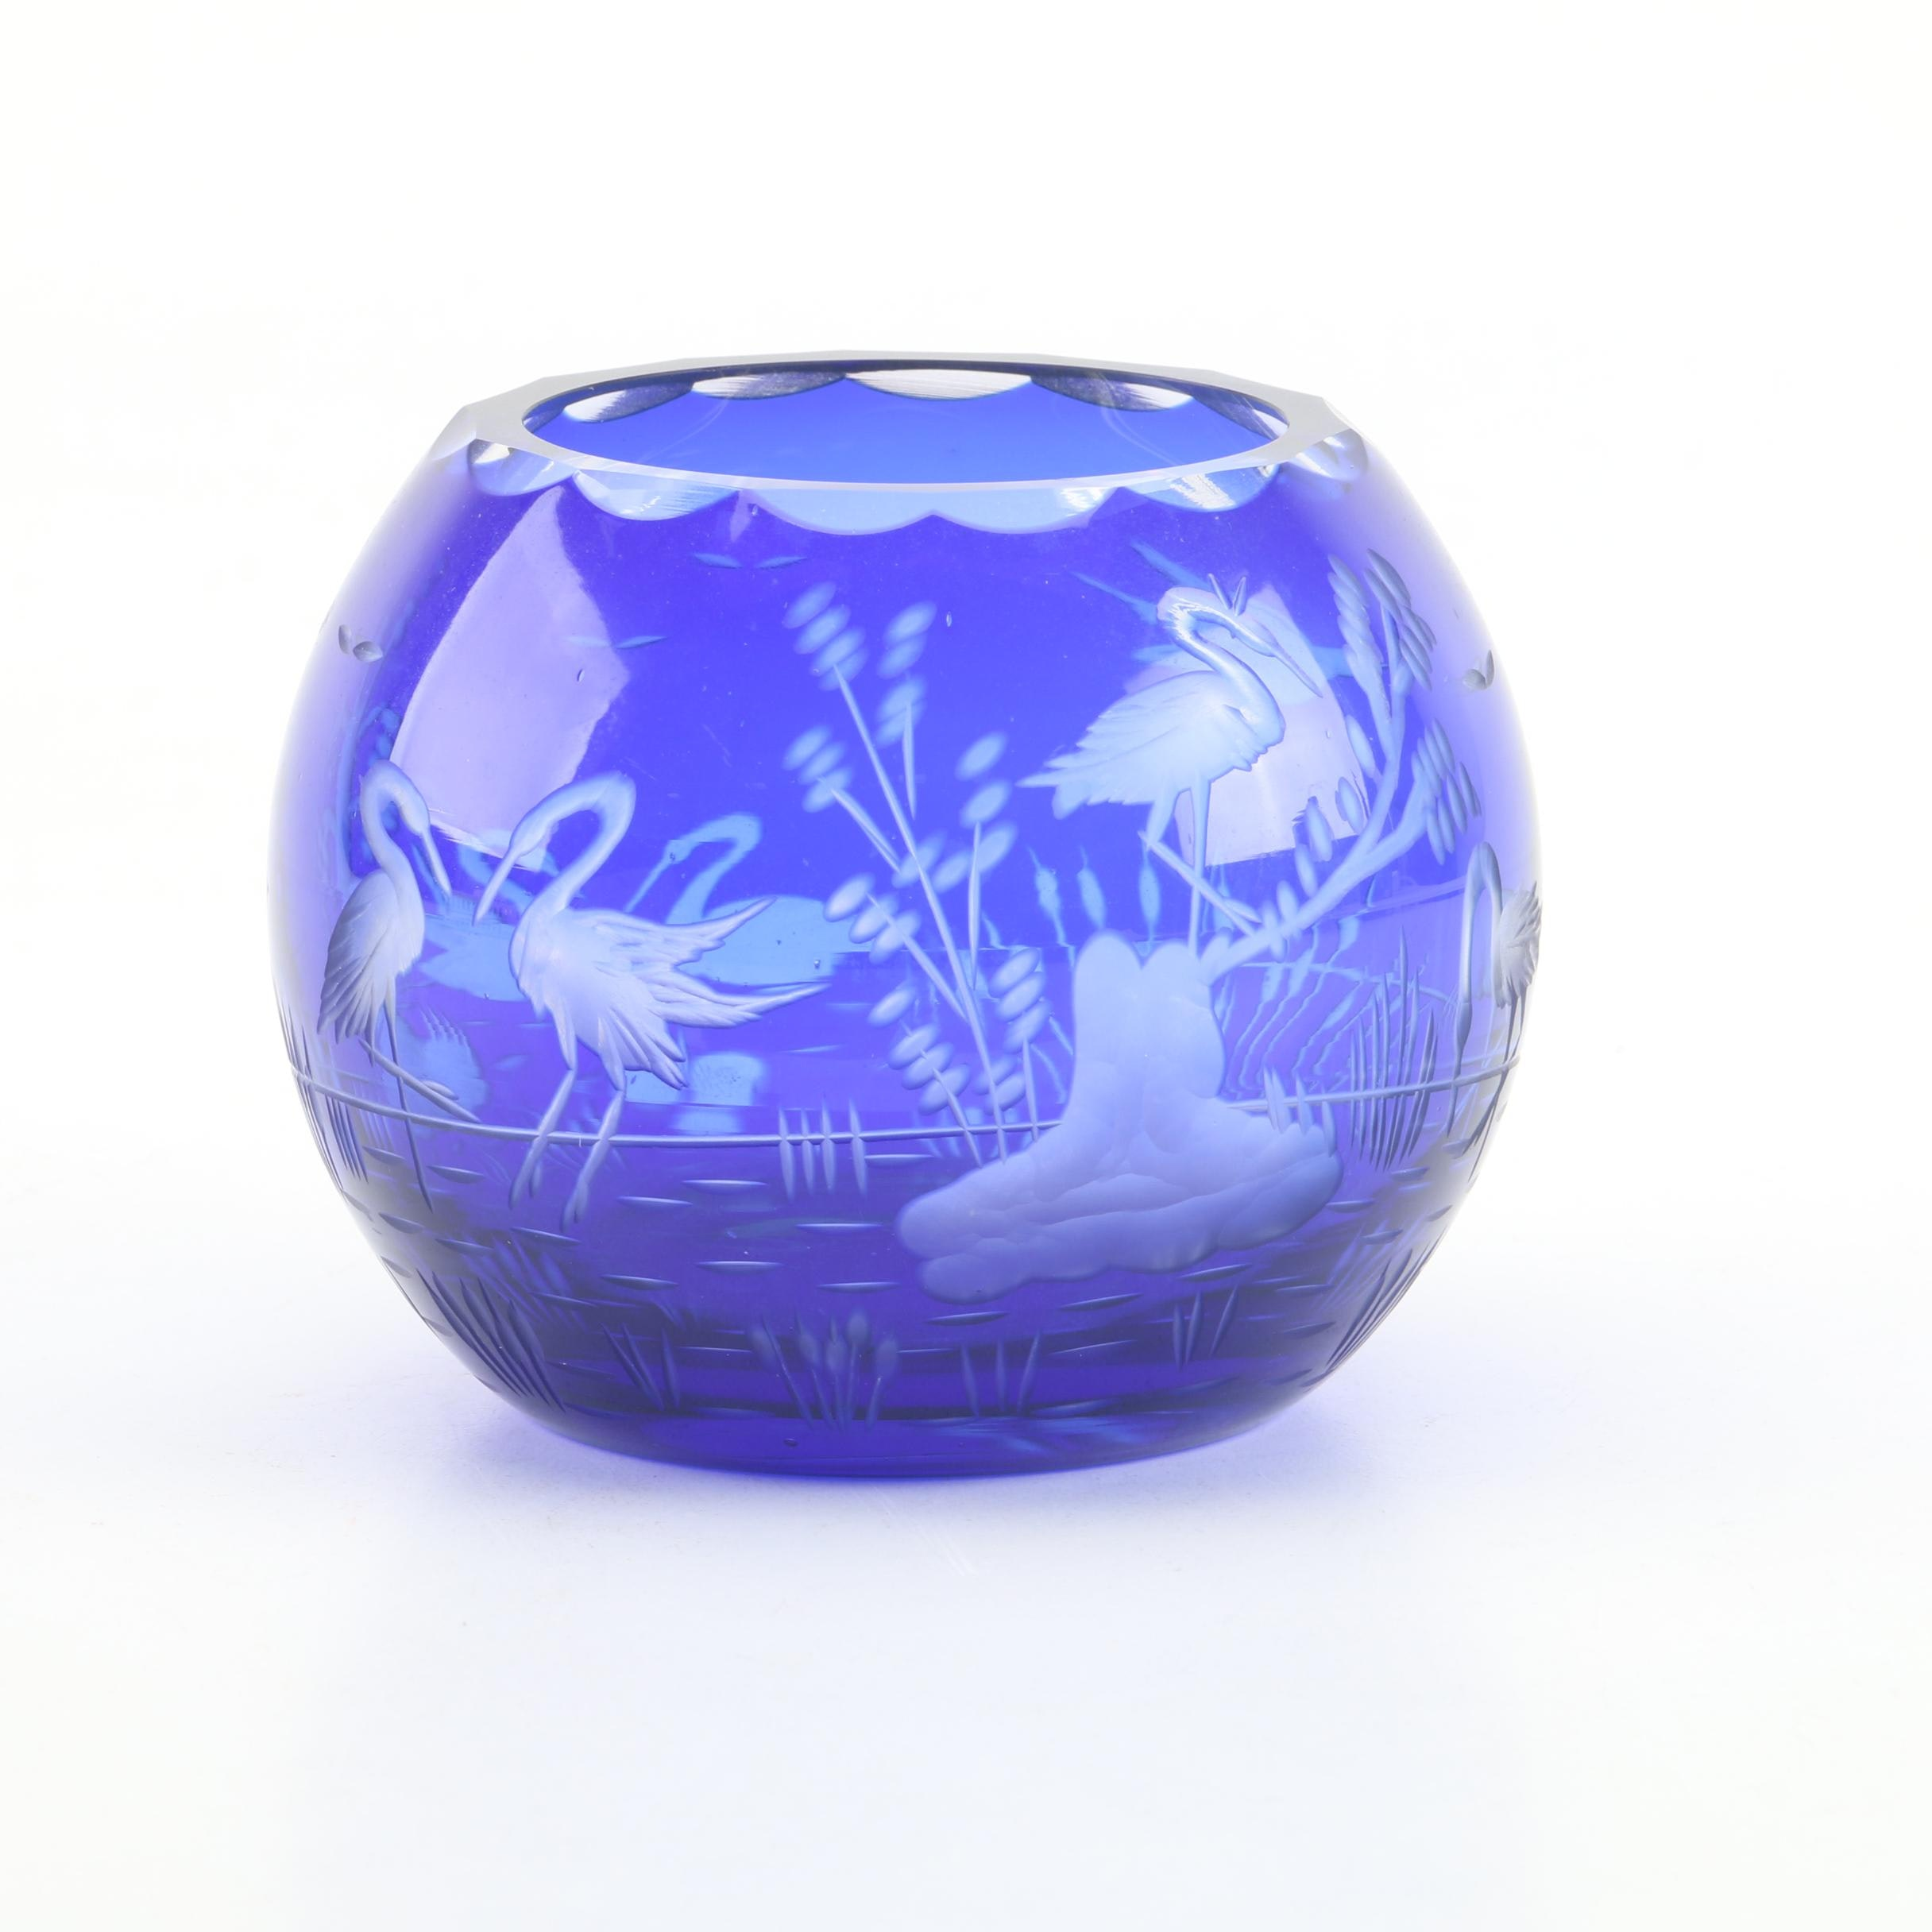 Vintage Blue Cut to Clear Crystal Rose Vase depicting a Waterfowl Scene